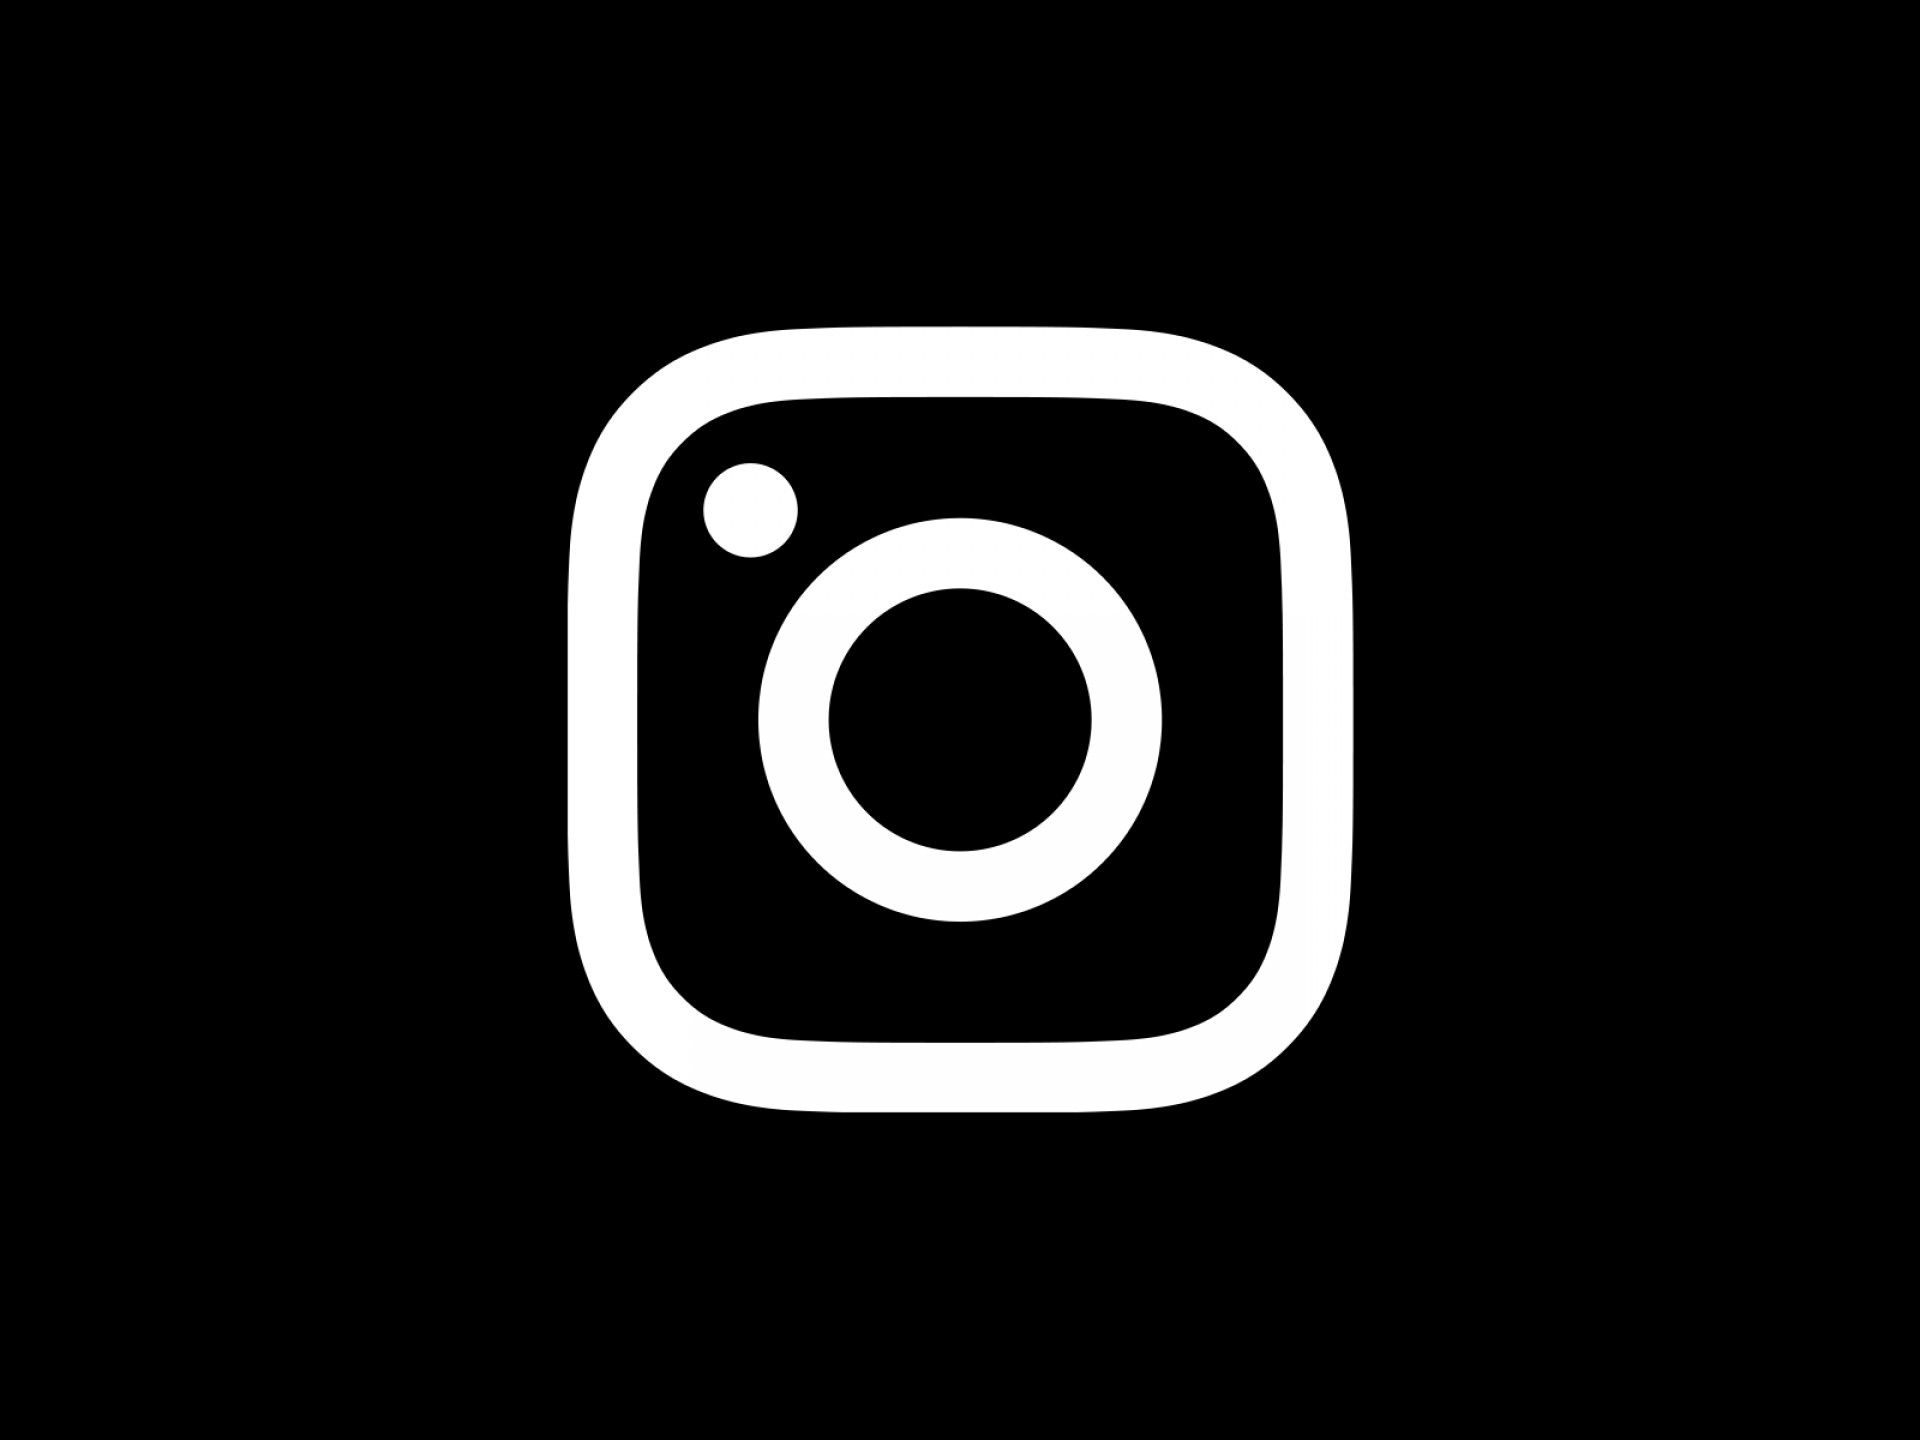 Instagram Logo Vector Icons Free Download.